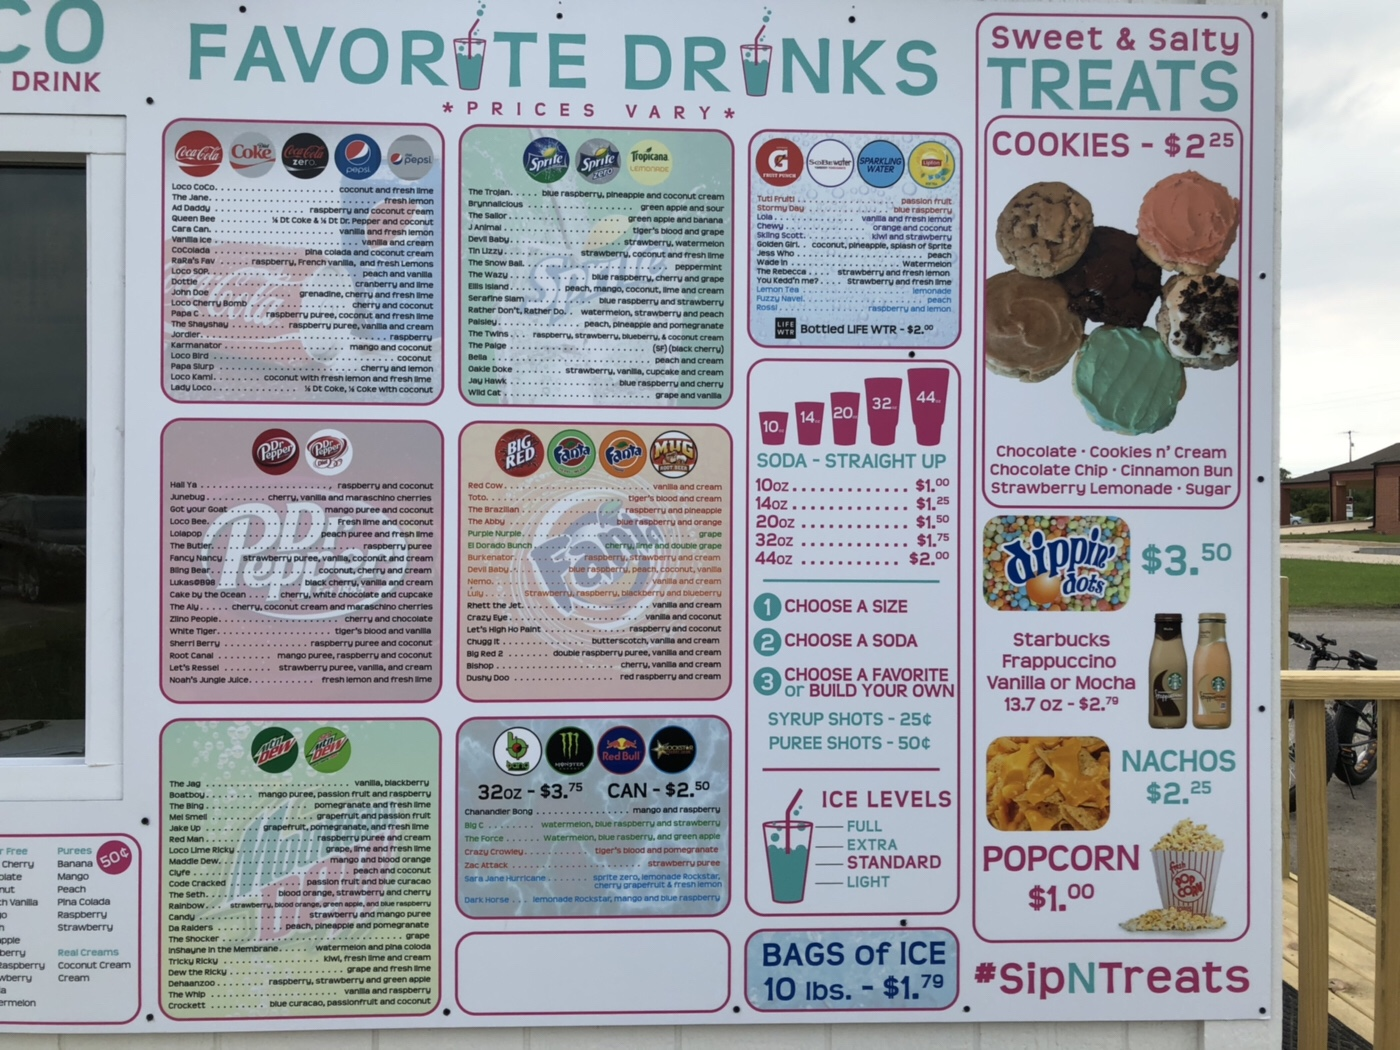 Sip 'N' Treats